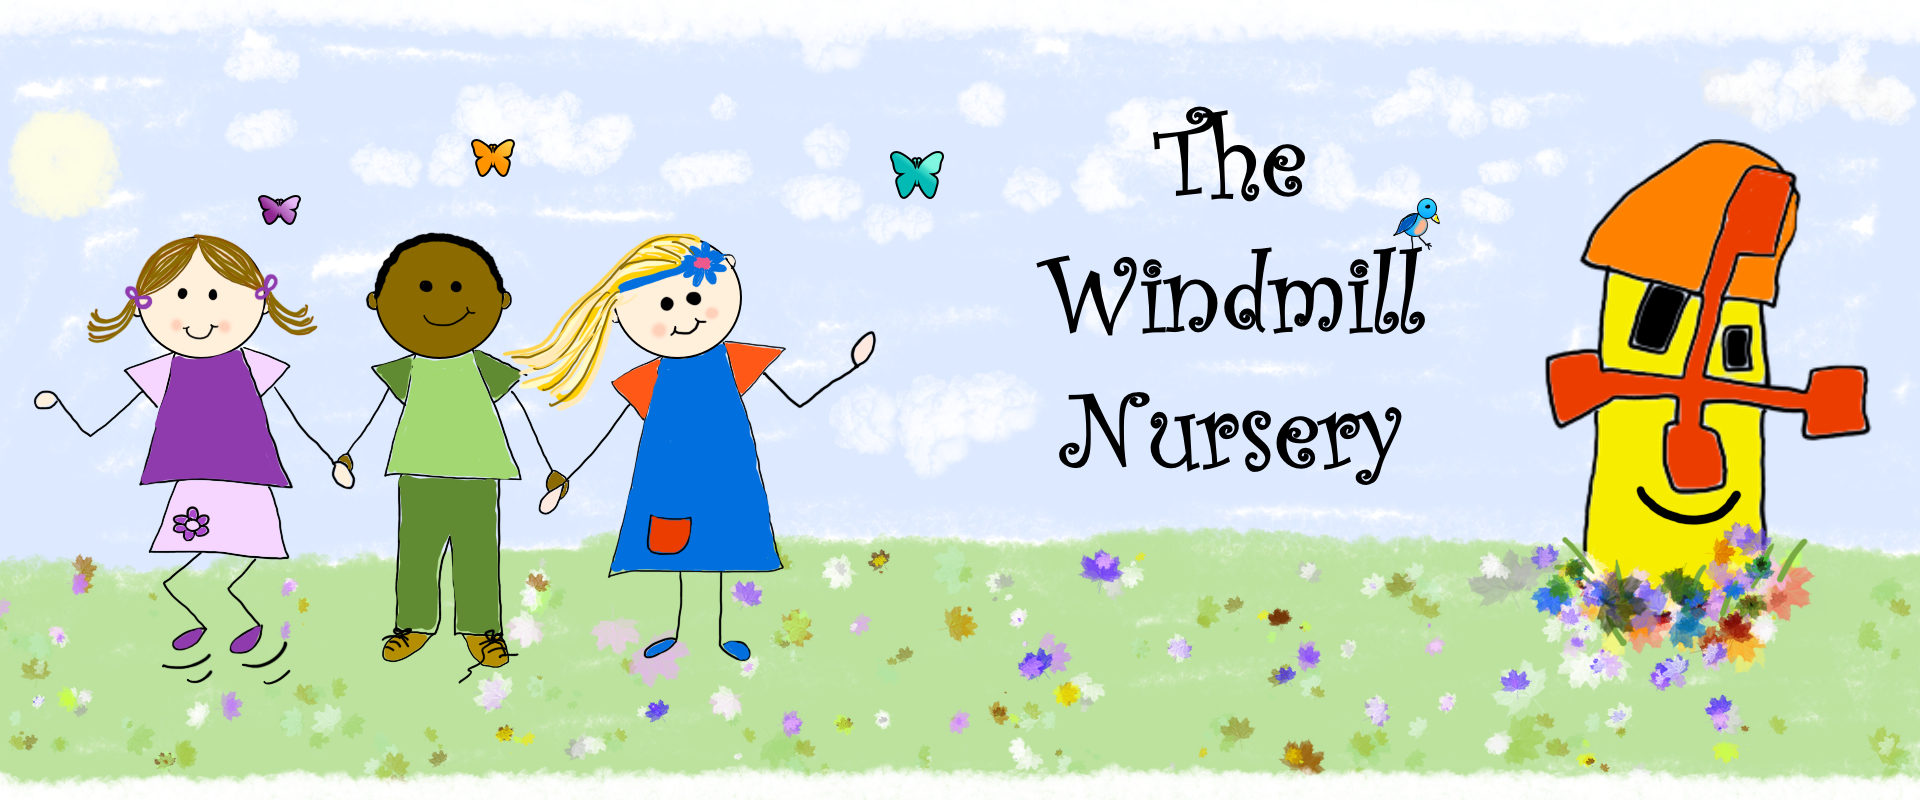 The Windmill Nursery